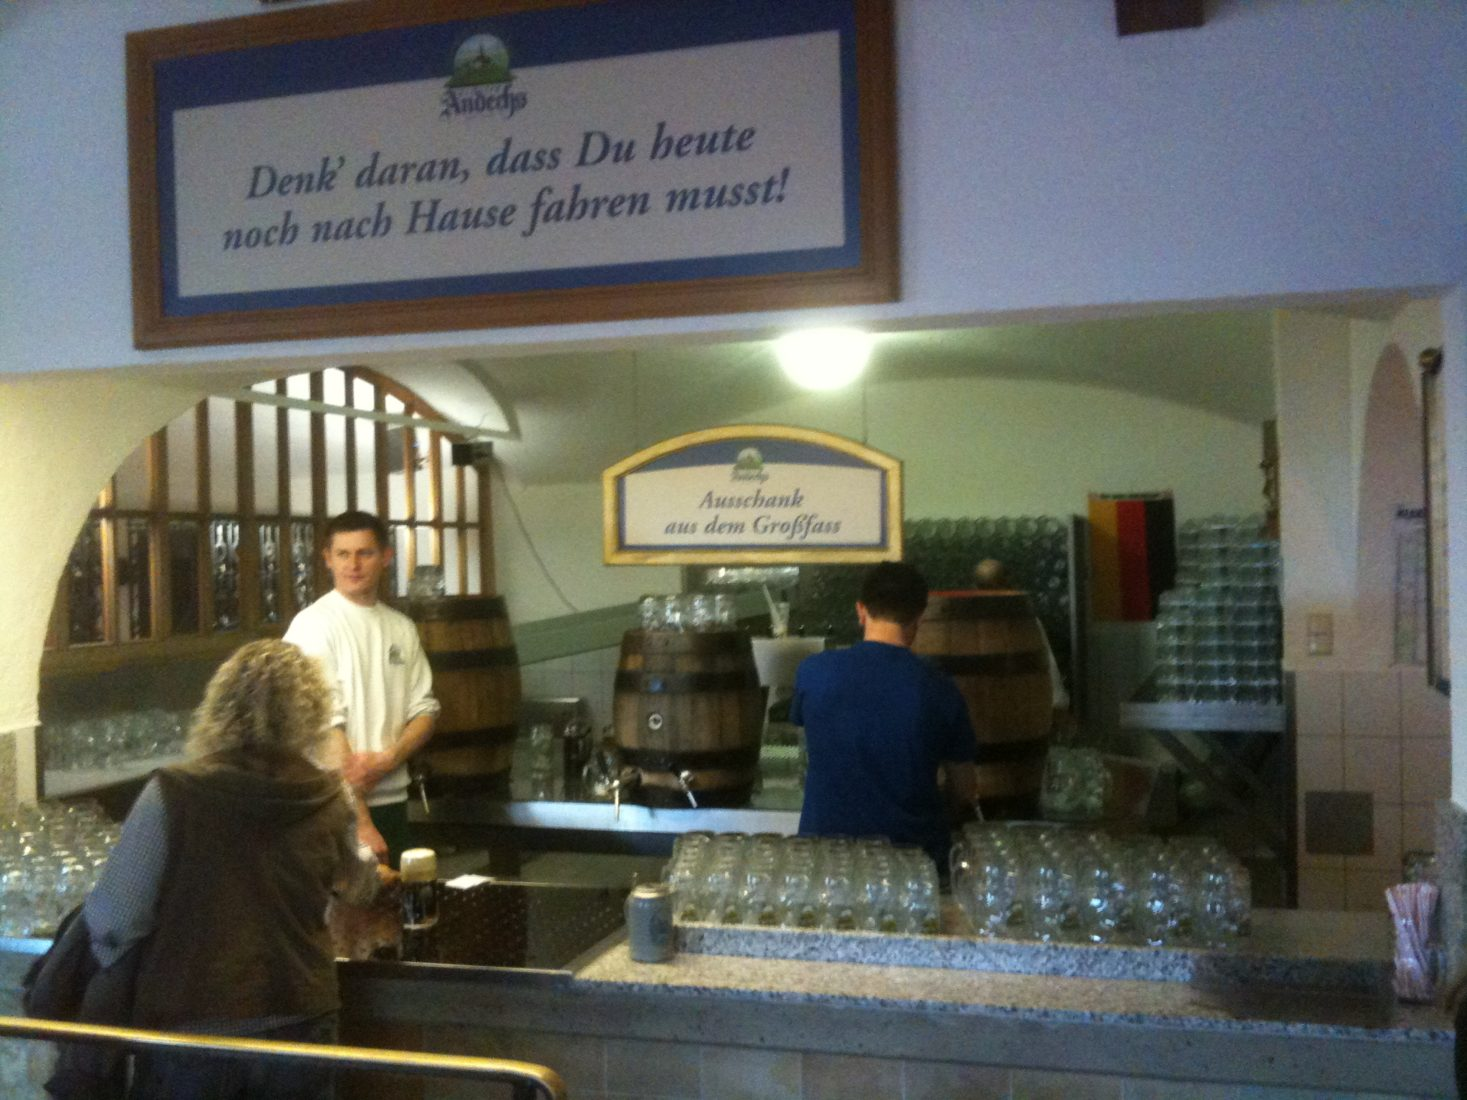 Beer at the Kloster Andechs